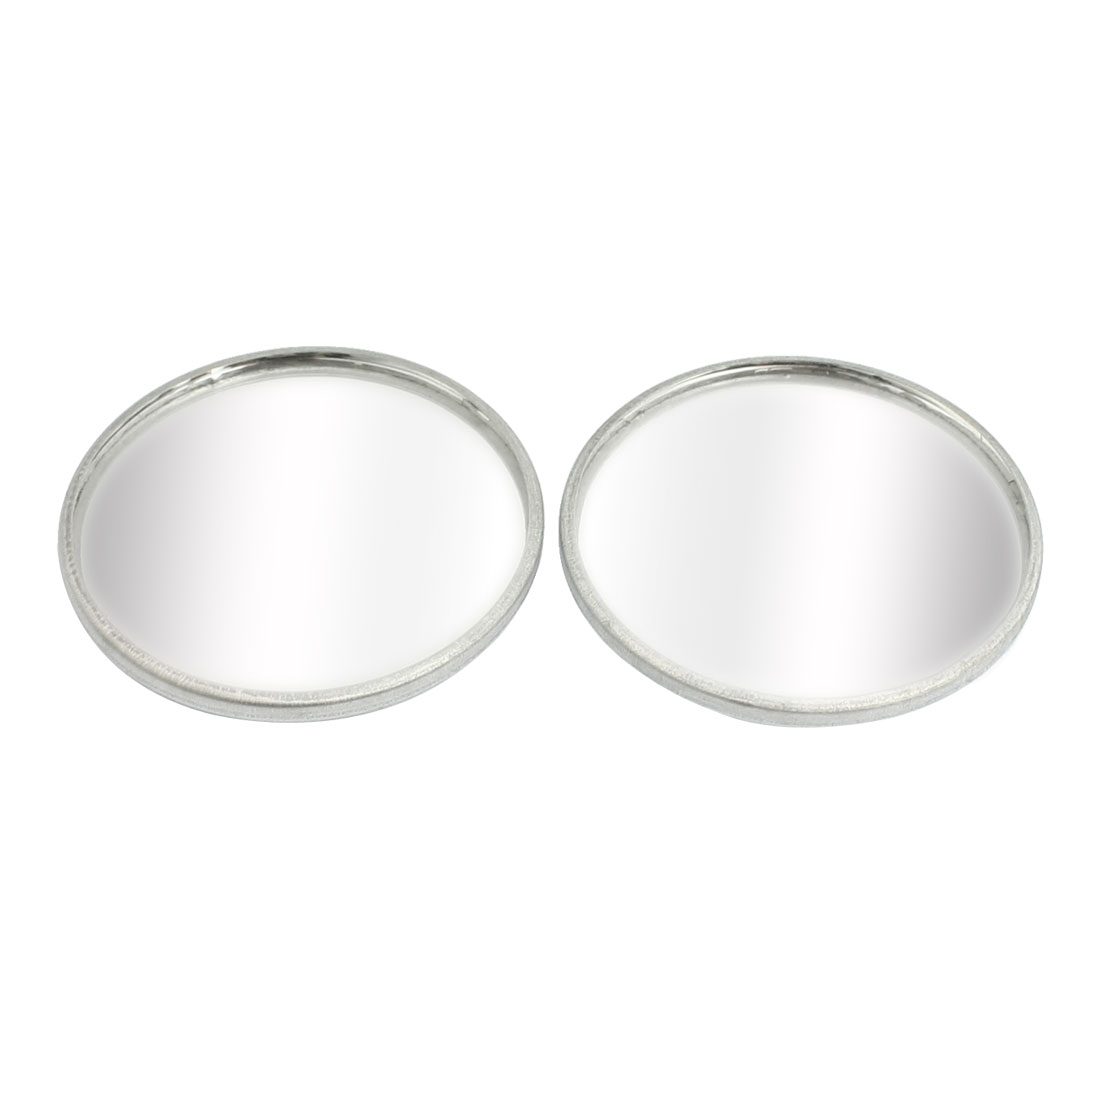 2 Pcs Silver Tone Adhesive Round Rear View Blind Spot Mirrors 1.6""